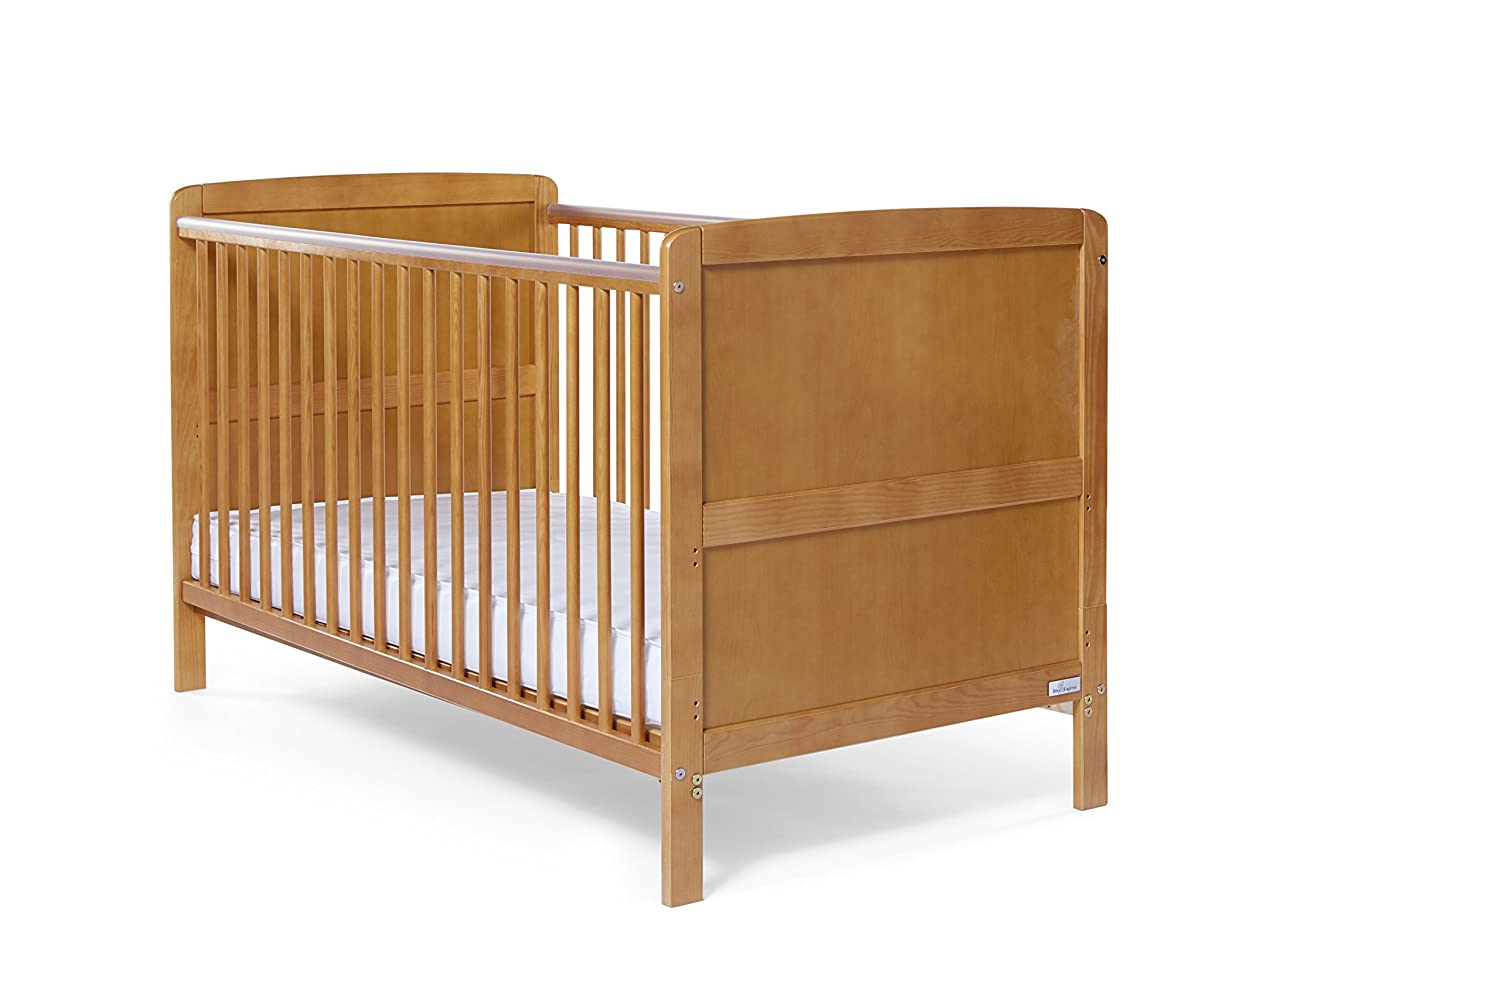 Baby Elegance Travis Cot Bed (Antique Pine) 1327